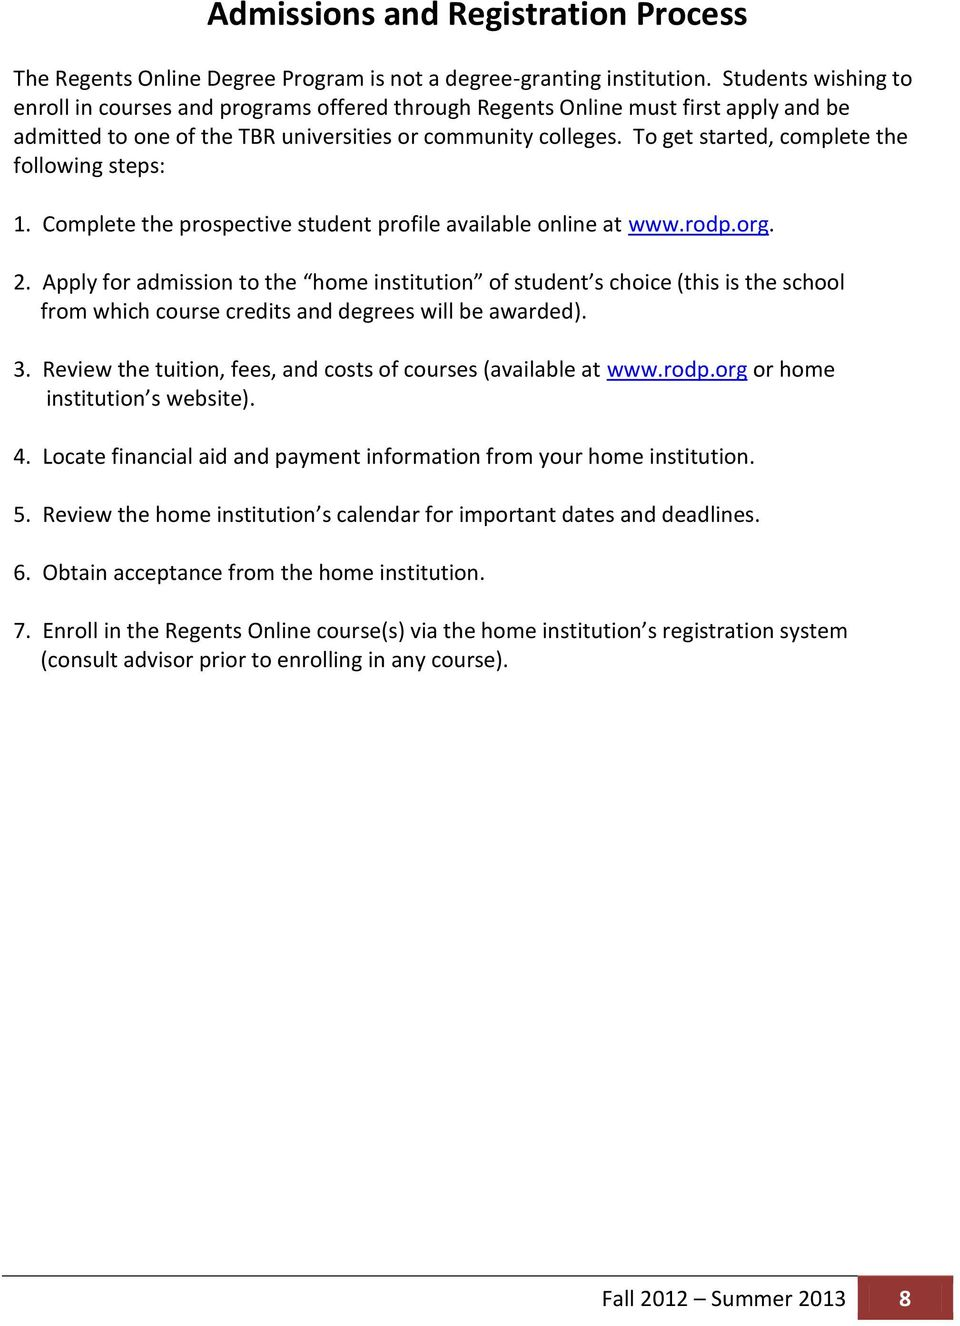 To get started, complete the following steps: 1. Complete the prospective student profile available online at www.rodp.org. 2.